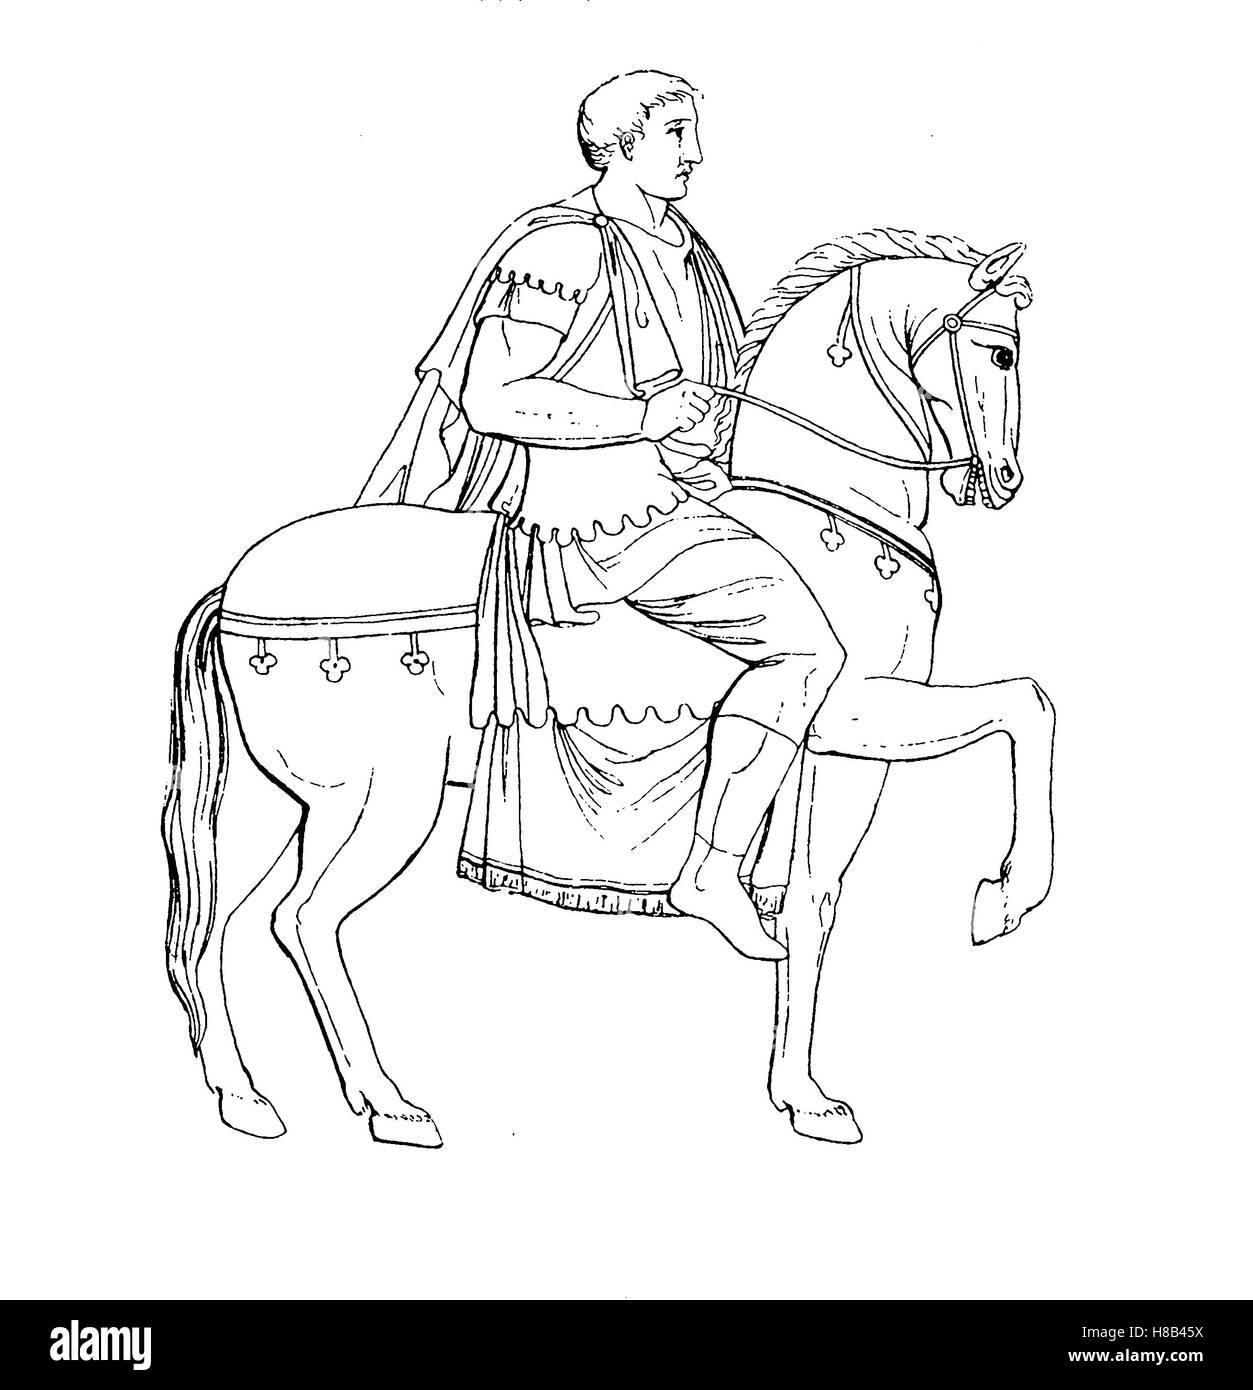 Antique Rome, Roman rider with Lorica and Sagum, riding coat, History of fashion, costume story - Stock Image